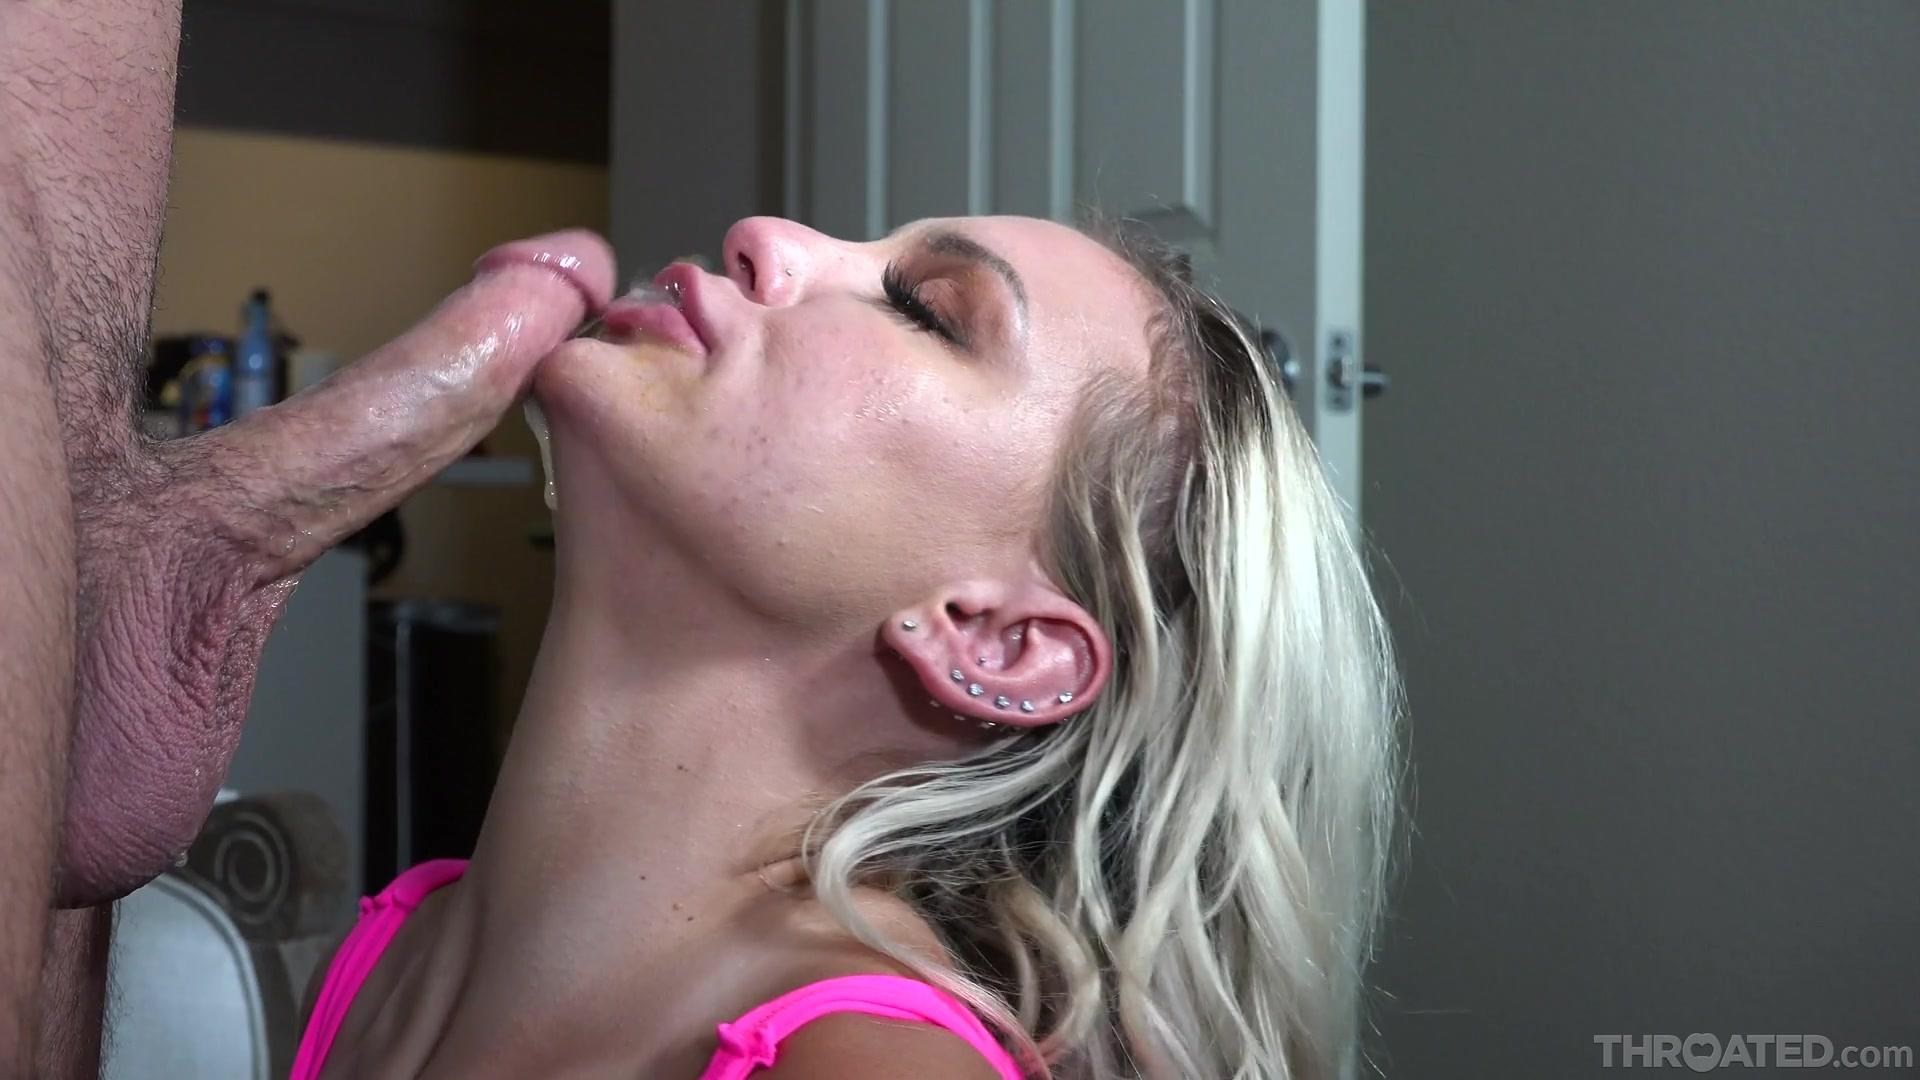 Throated – Kenzie Taylor Homemade